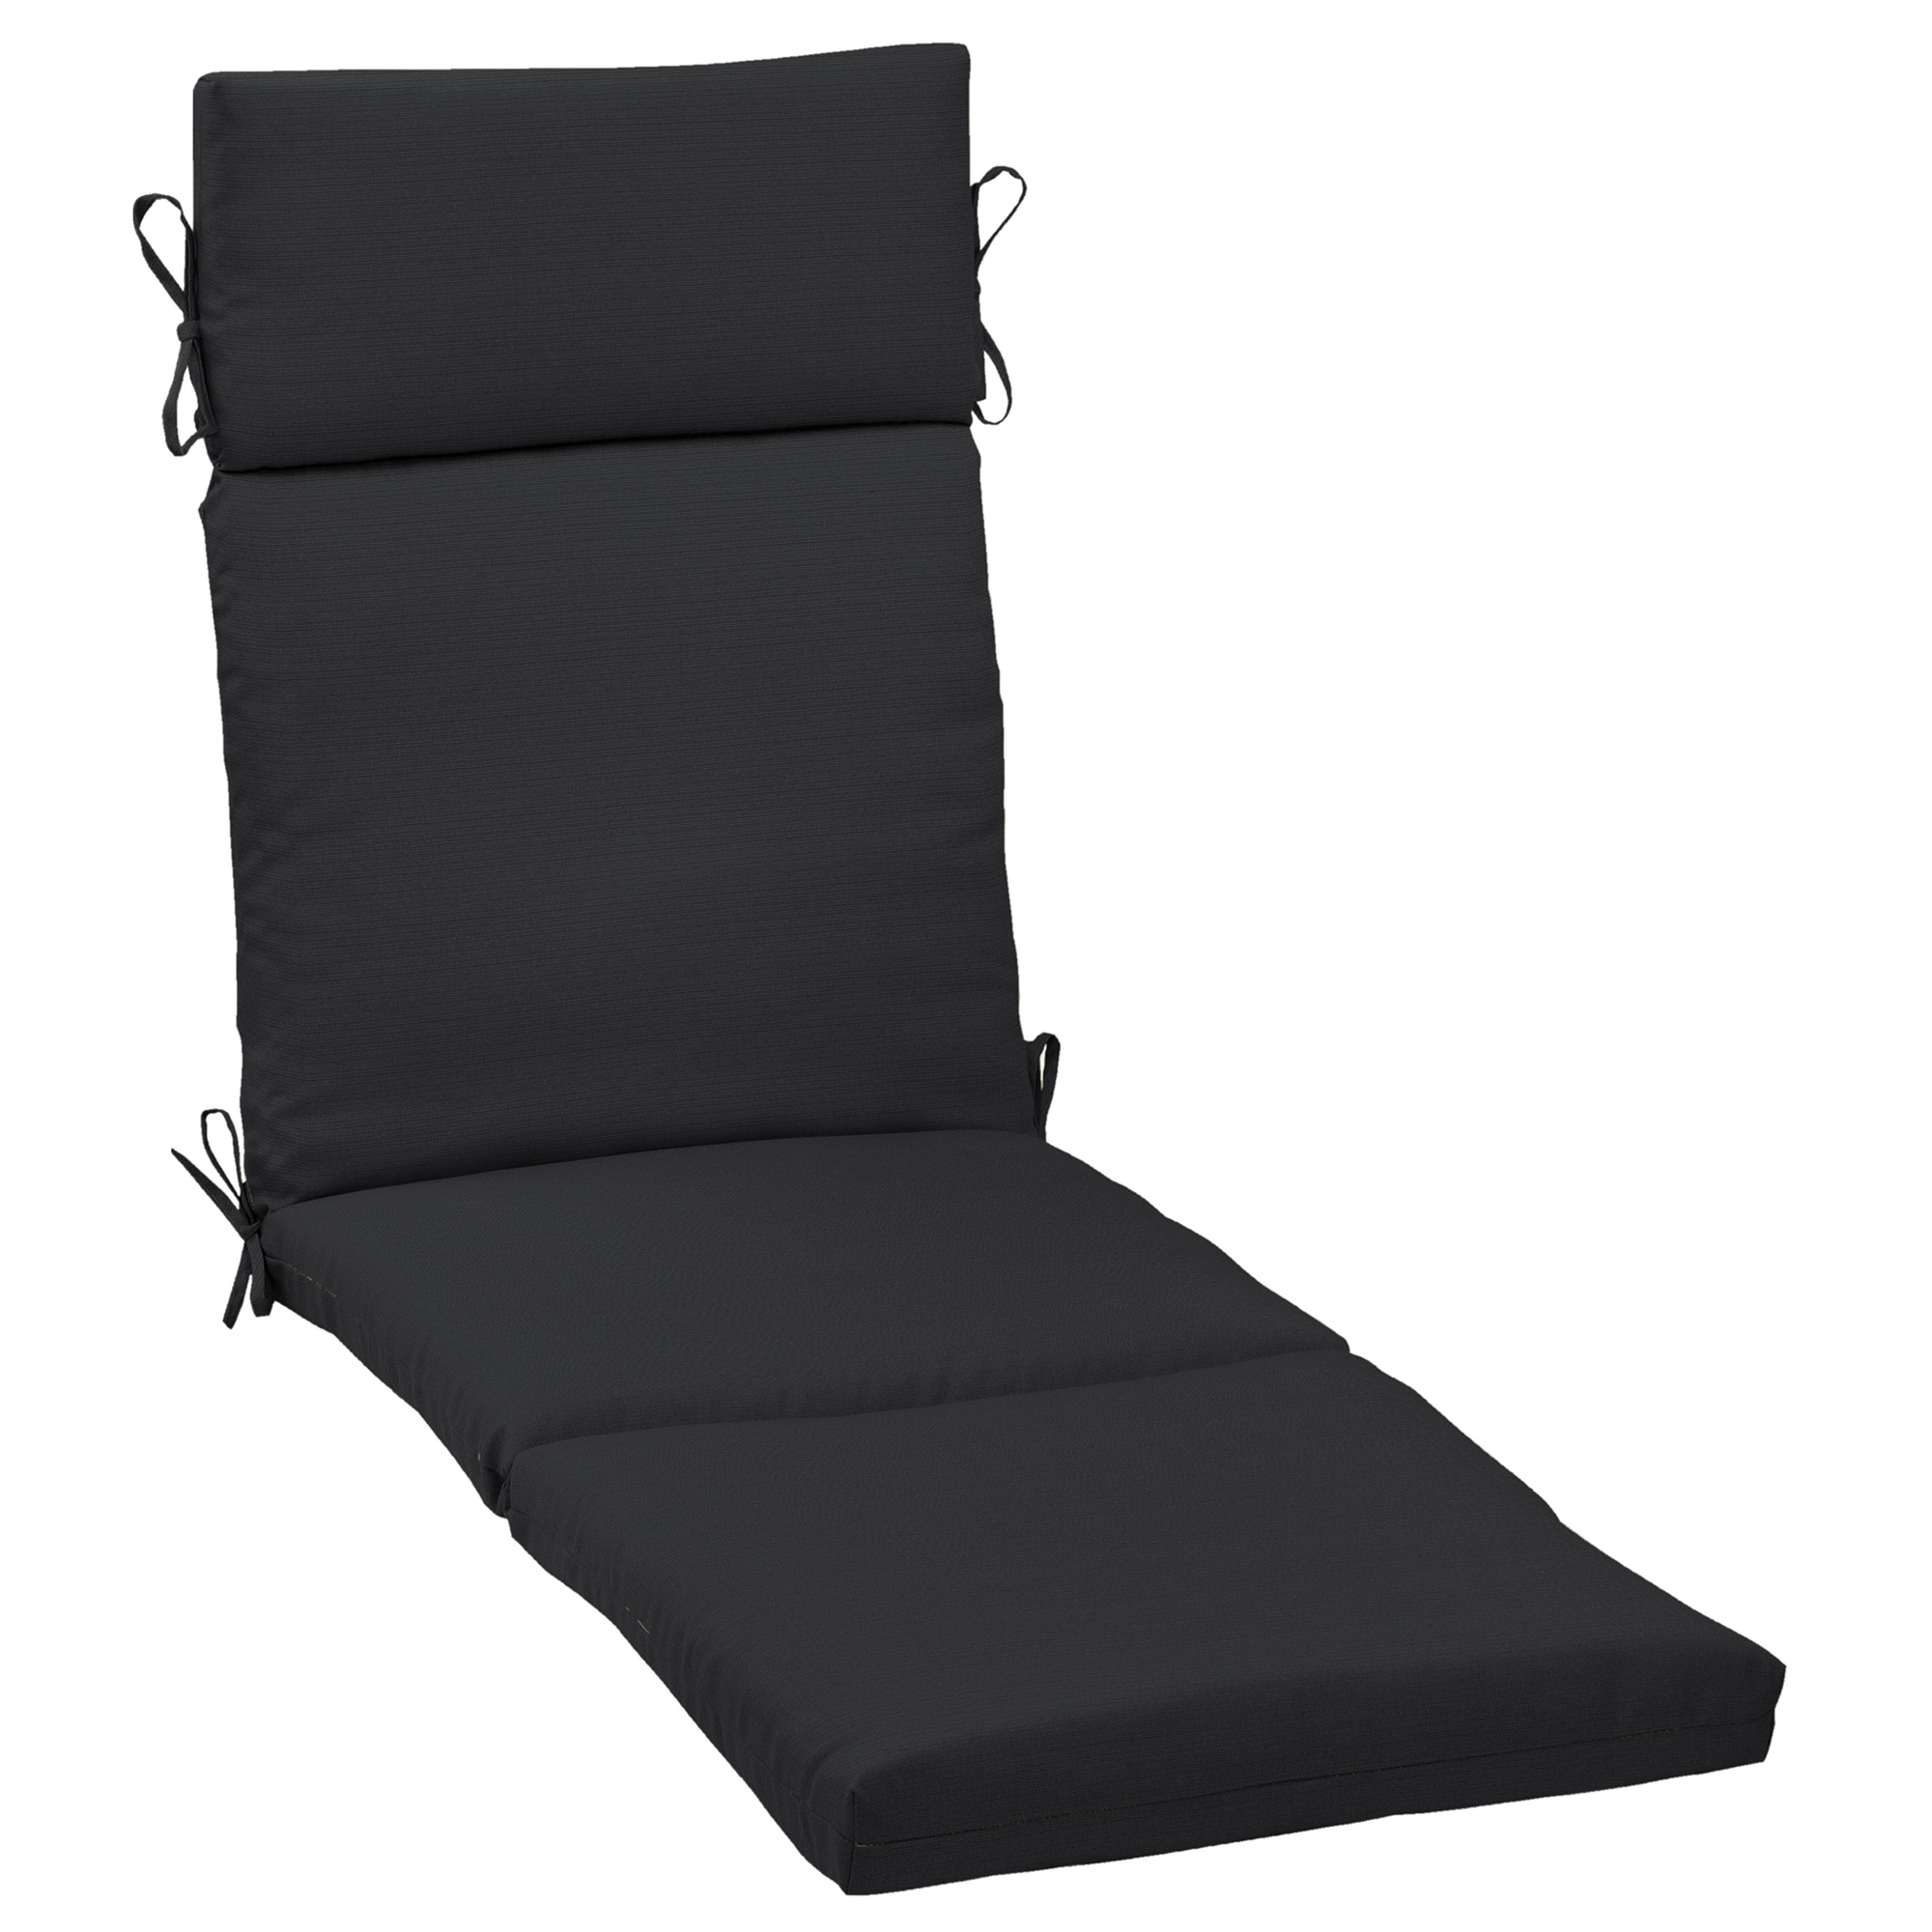 Better Homes & Gardens Black 72 x 21 in. Outdoor Chaise Lounge Cushion with EnviroGuard